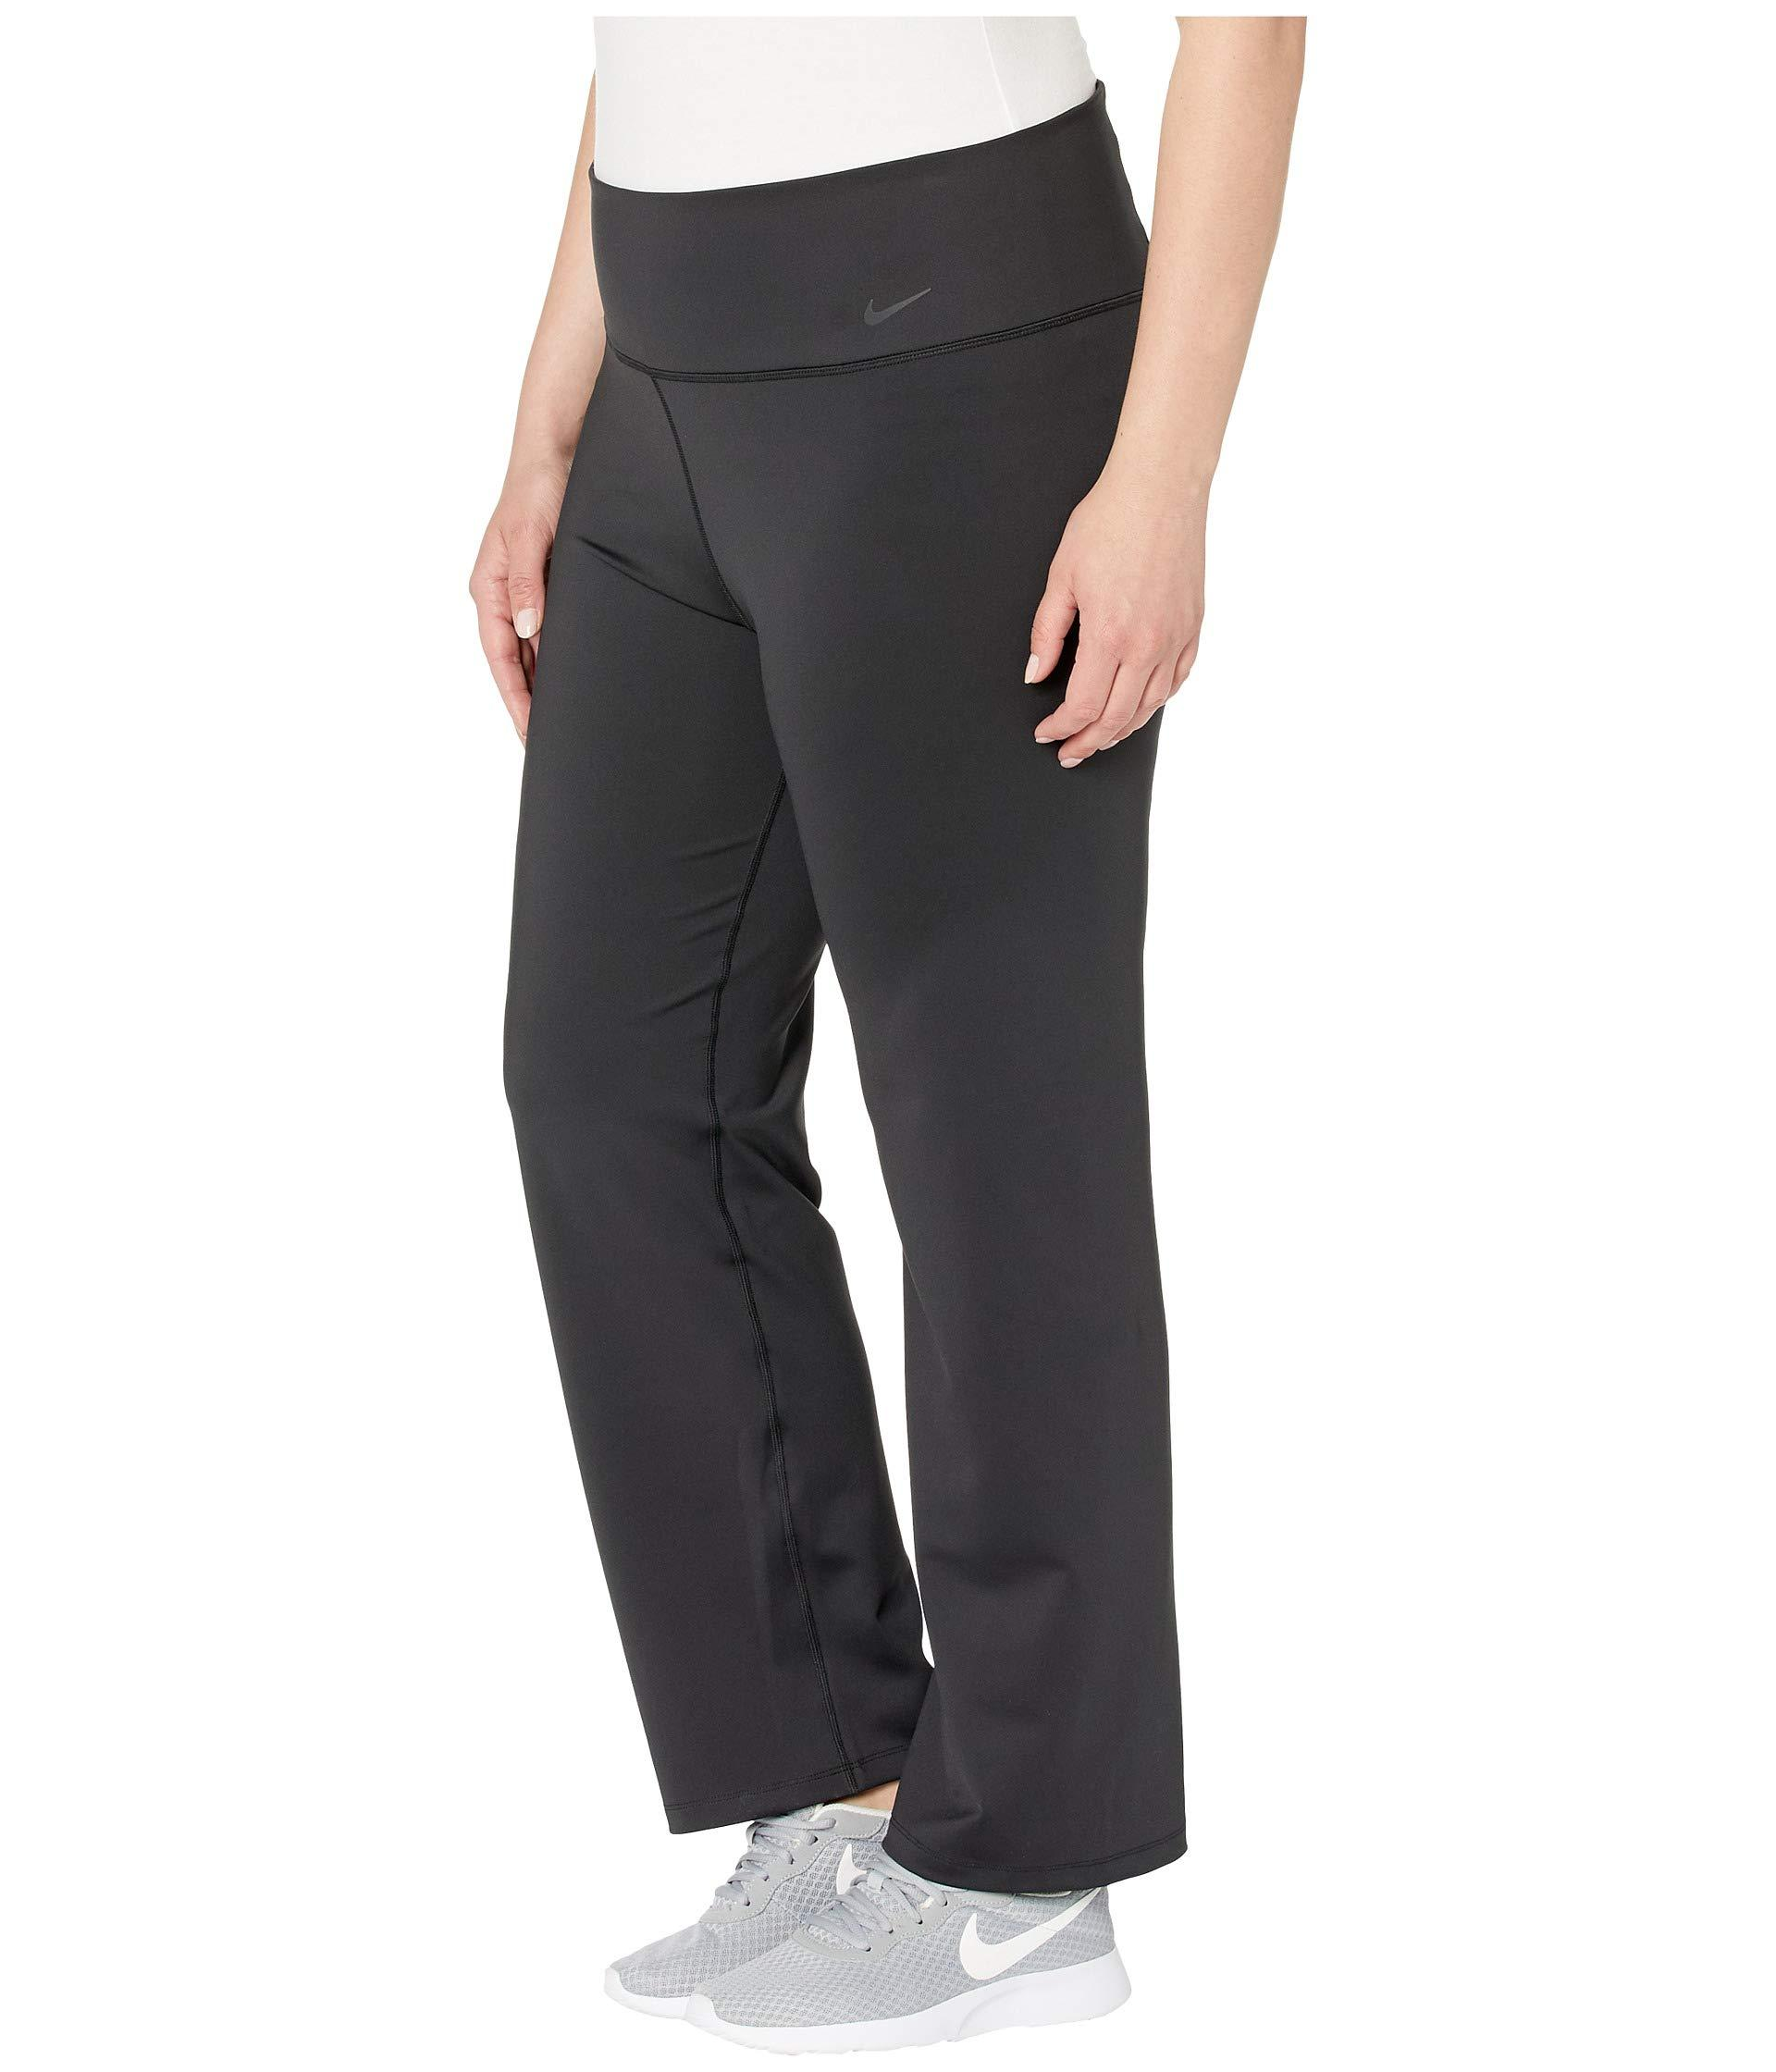 81edccc55f17f Nike Power Classic Gym Pants (sizes 1x-3x) (black/black) Women's ...